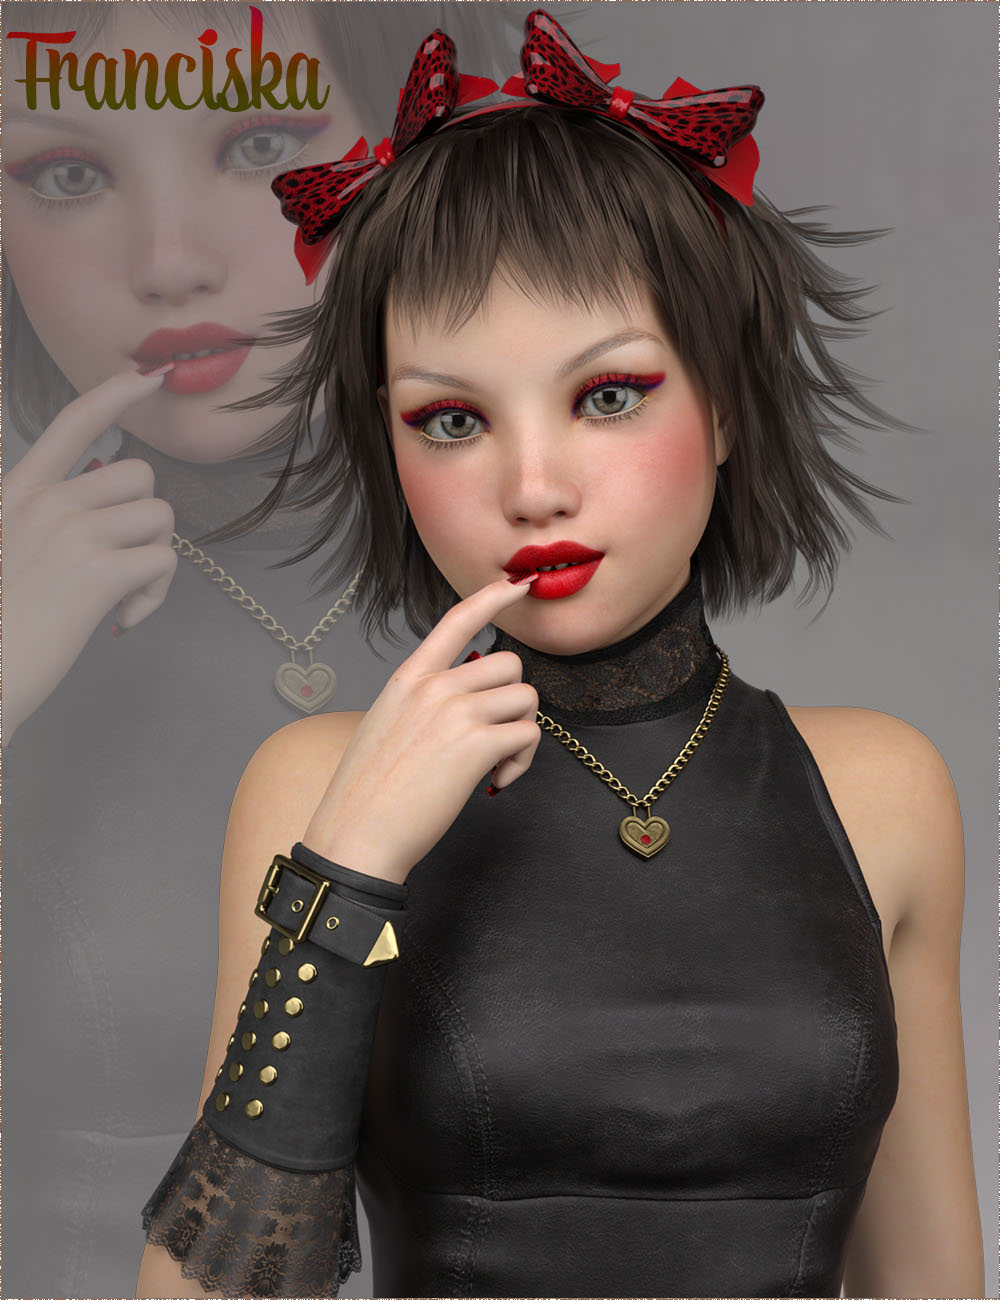 TDT-Franciska for Genesis 3 Female